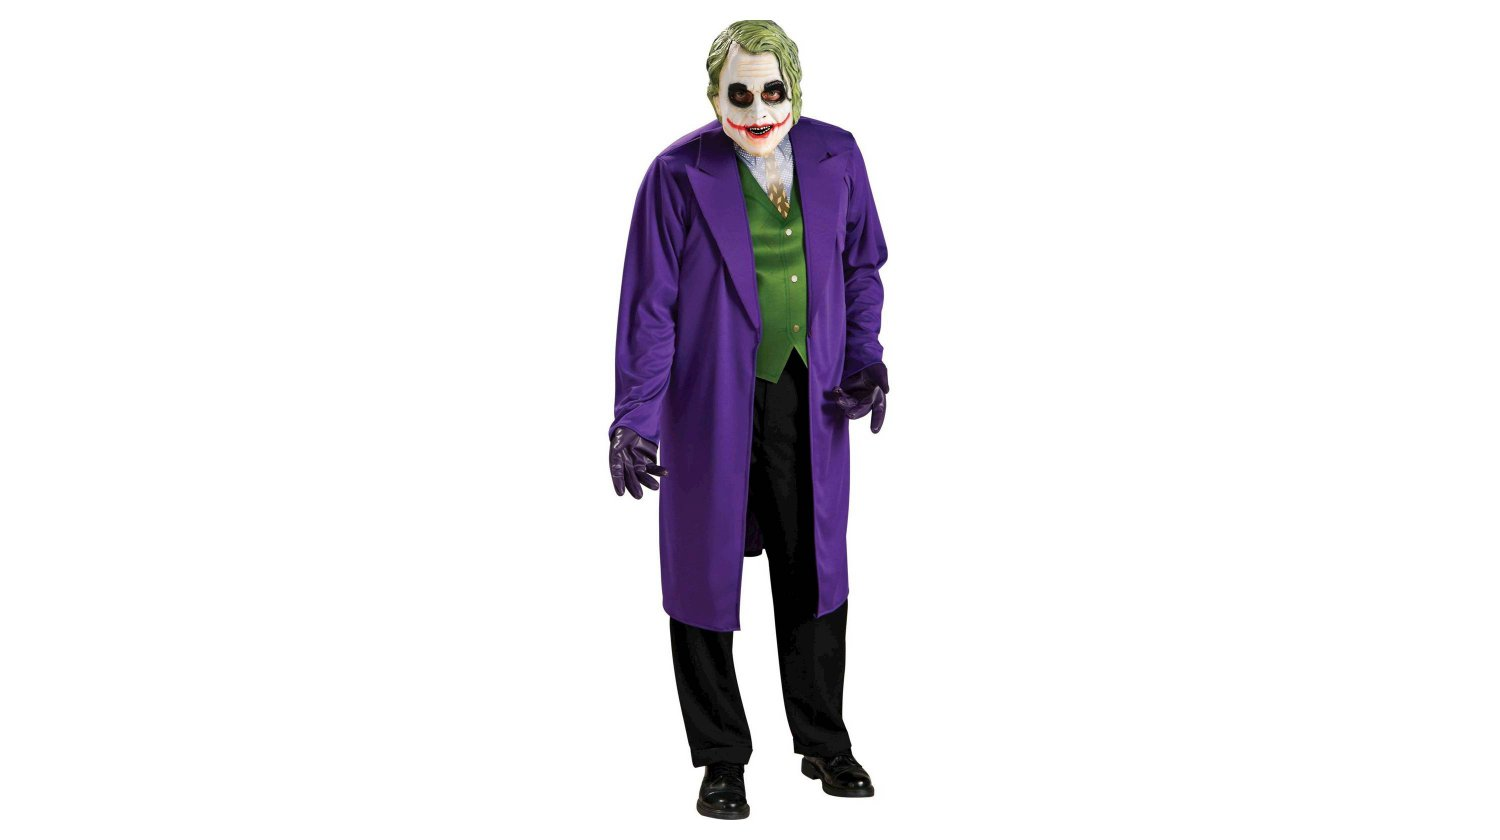 Size: X-Large 888631 Batman The Dark Knight Joker Adult Costume